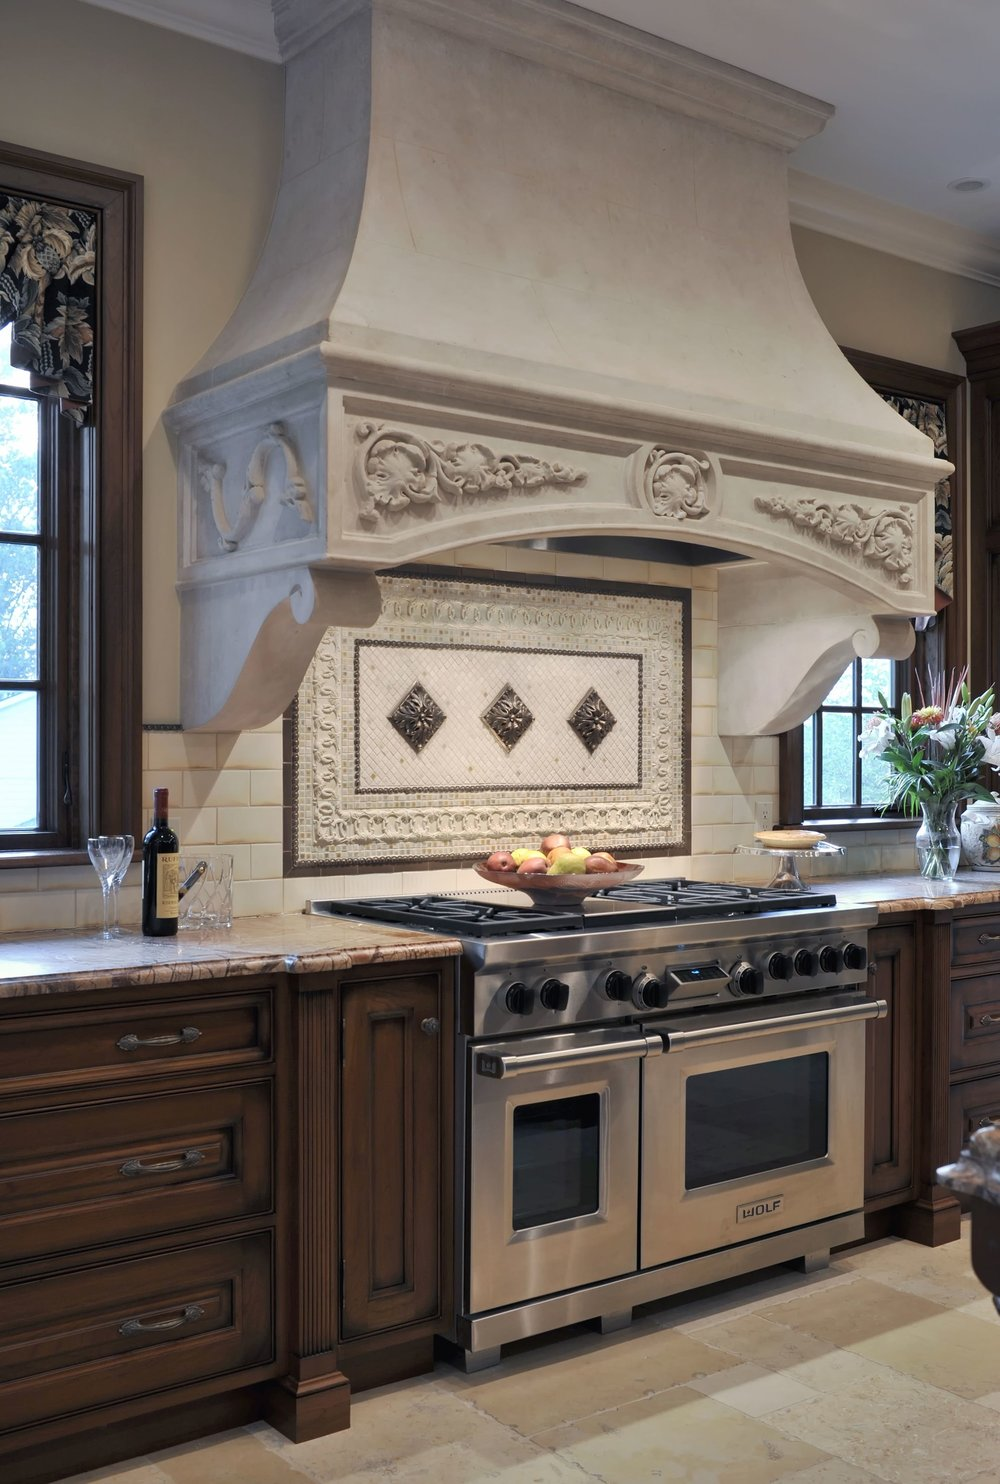 Traditional style kitchen with stainless range oven